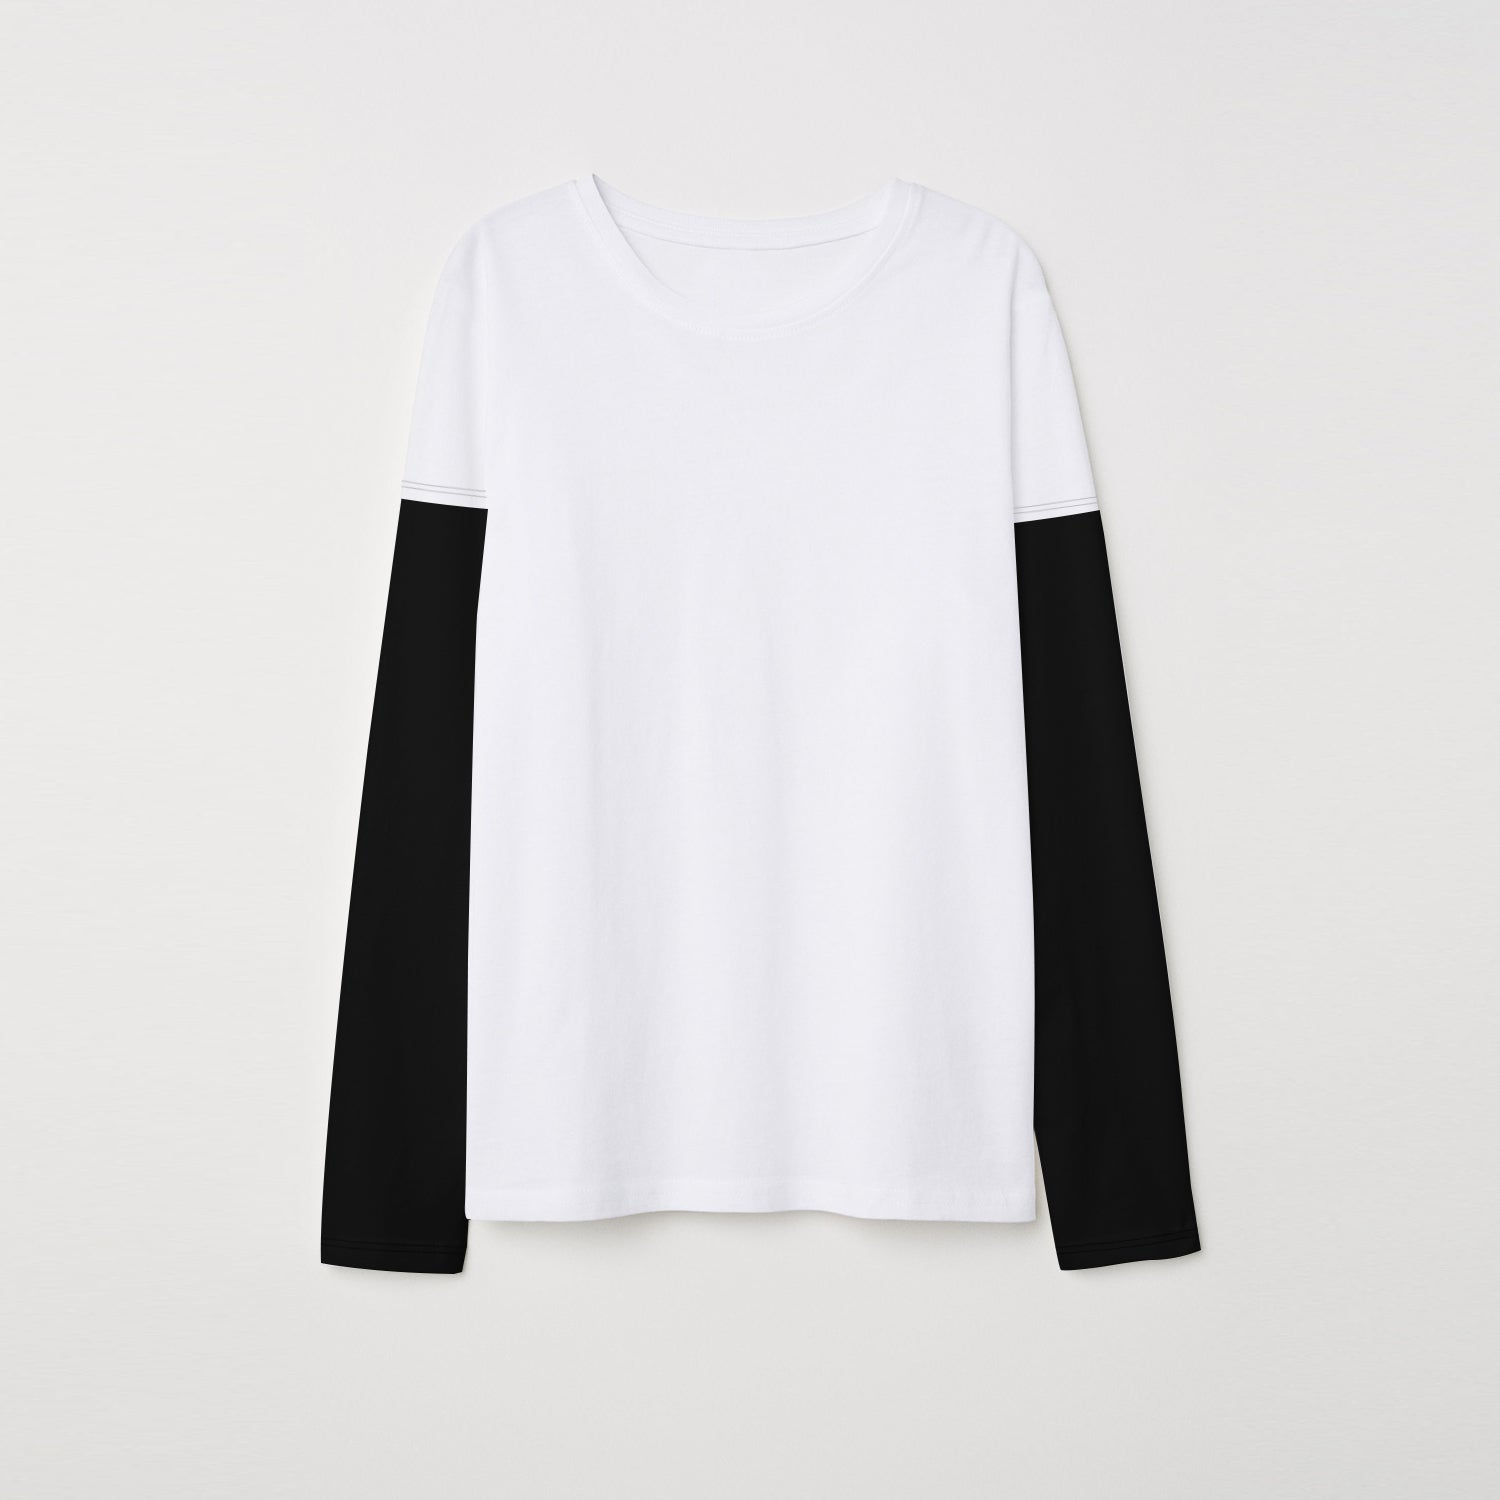 brandsego - NEXT Single Jersey Long Sleeve Tee Shirt For Kids-White & Black-BE9391